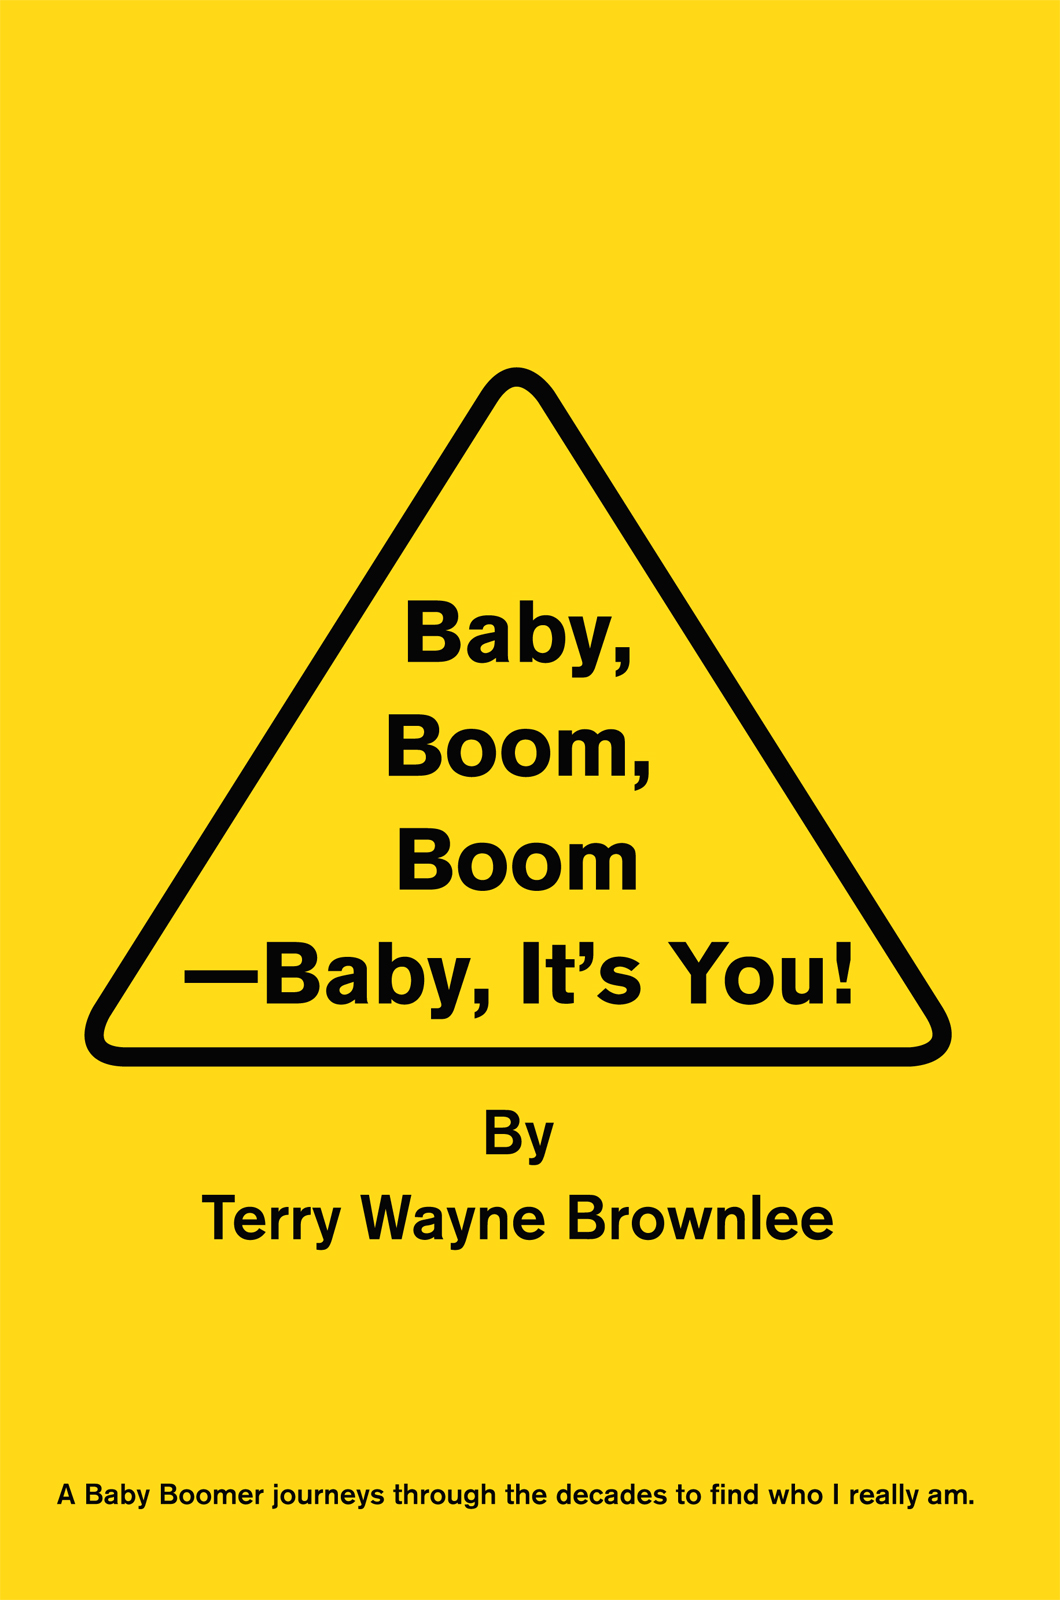 Baby Boom, Boom, Baby, It's You! By: Terry Wayne Brownlee